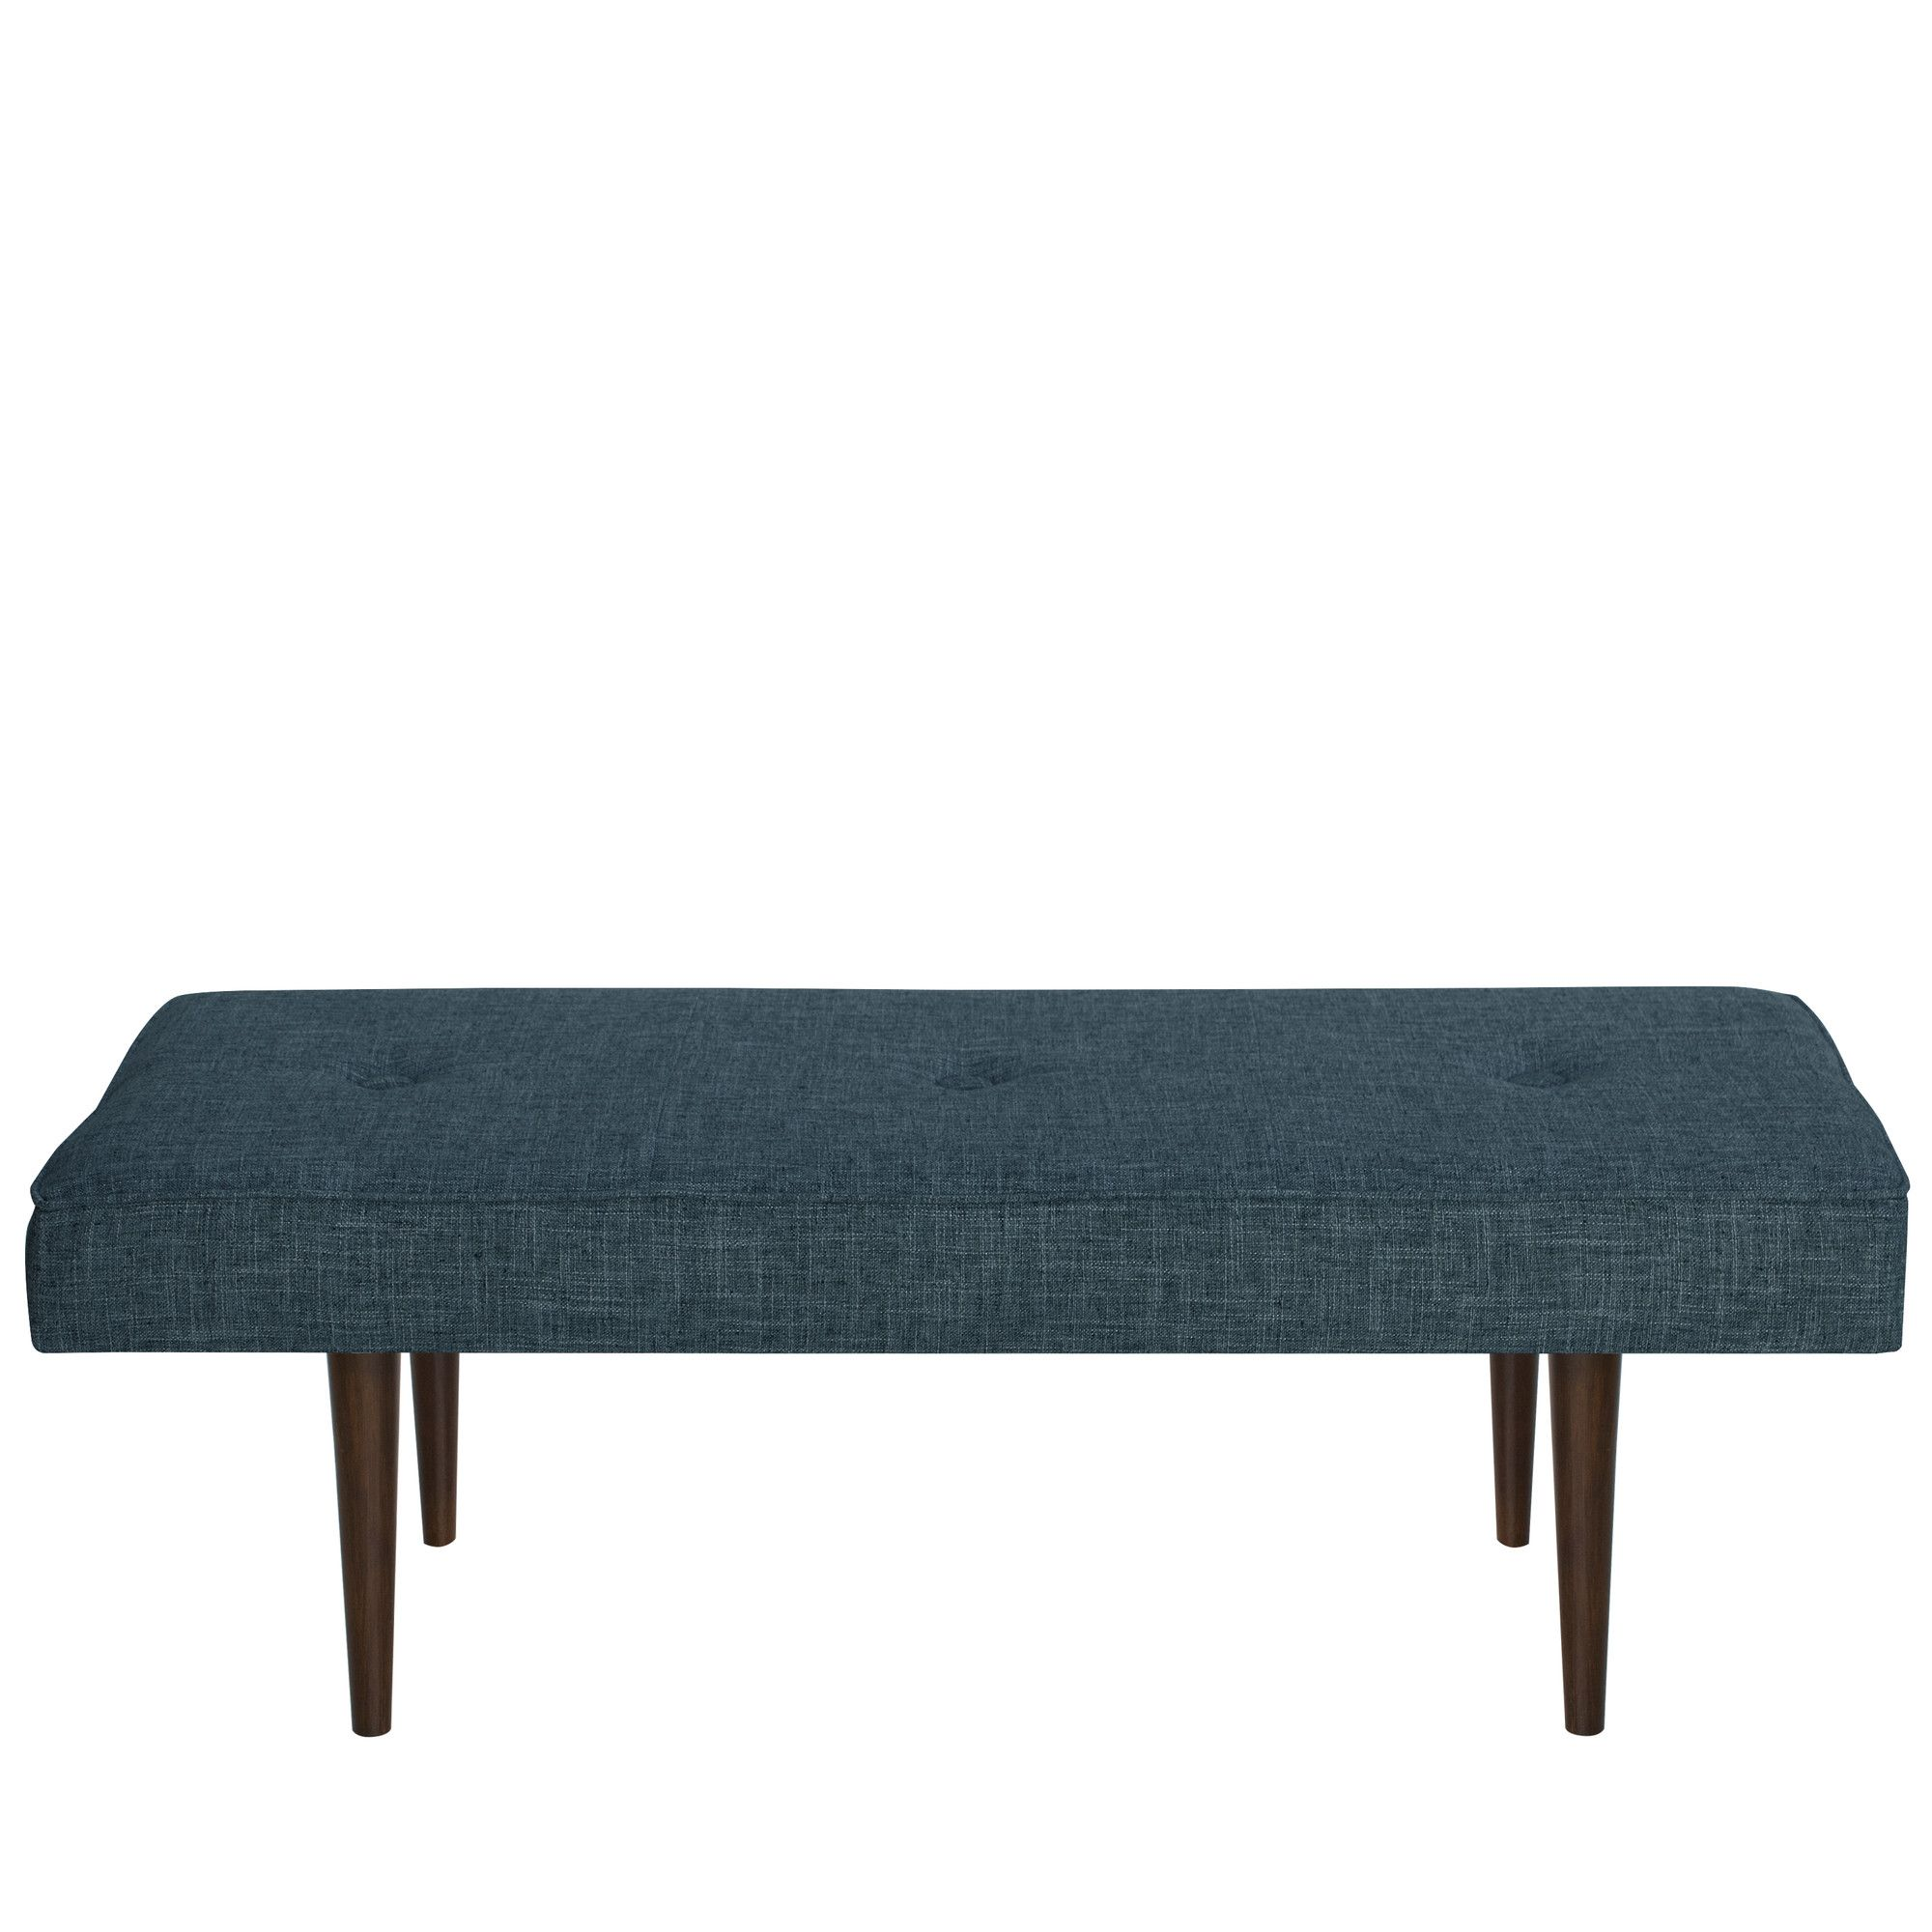 Fairhill tufted woven linen upholstered bedroom bench linens and